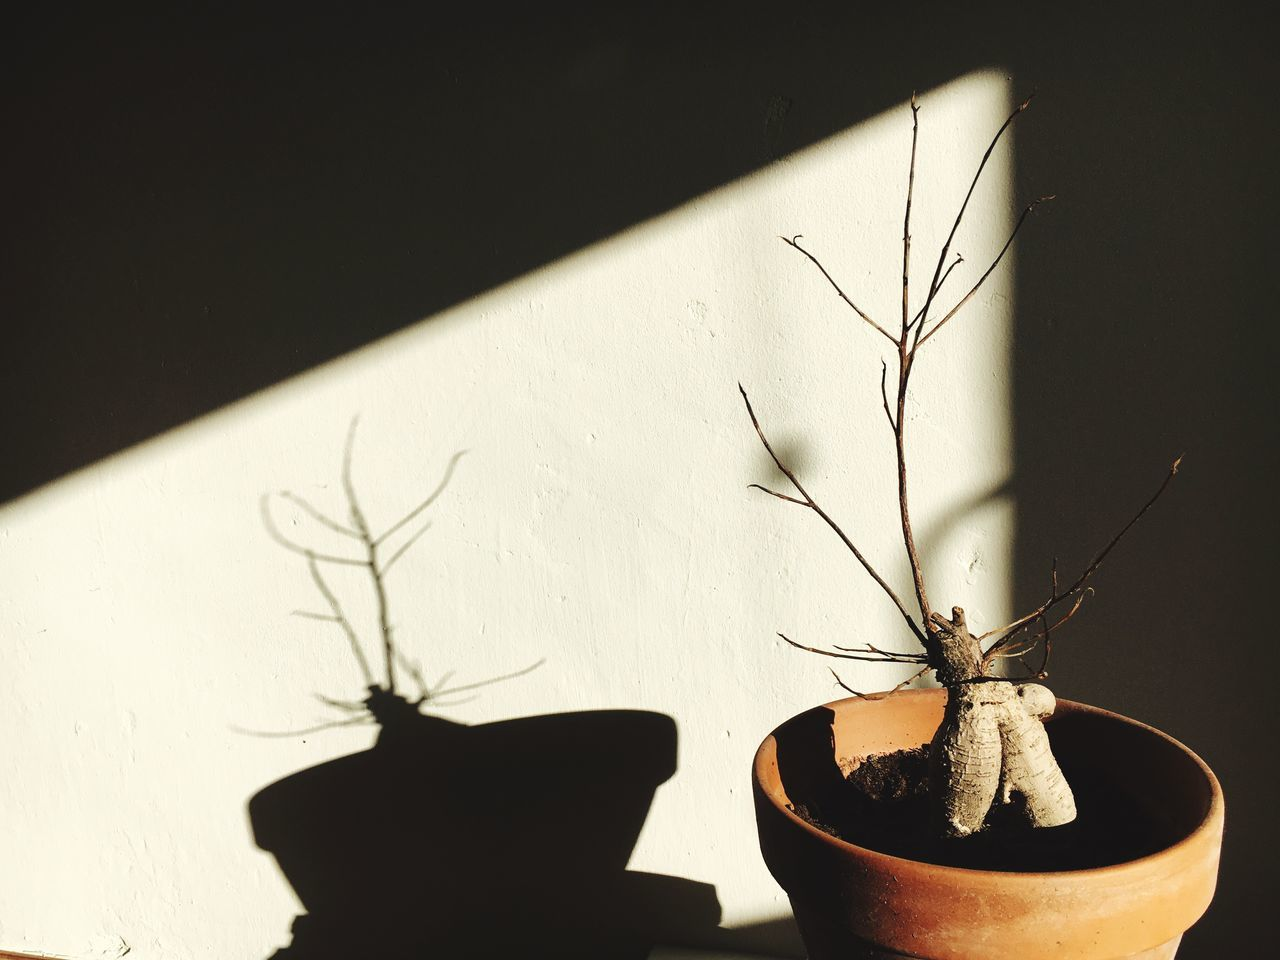 Still Life Dead Plant No Leaves Shadow Minimalism Ginseng Minimalobsession Light And Shadow Plant Indoors  Nakedtree Winter